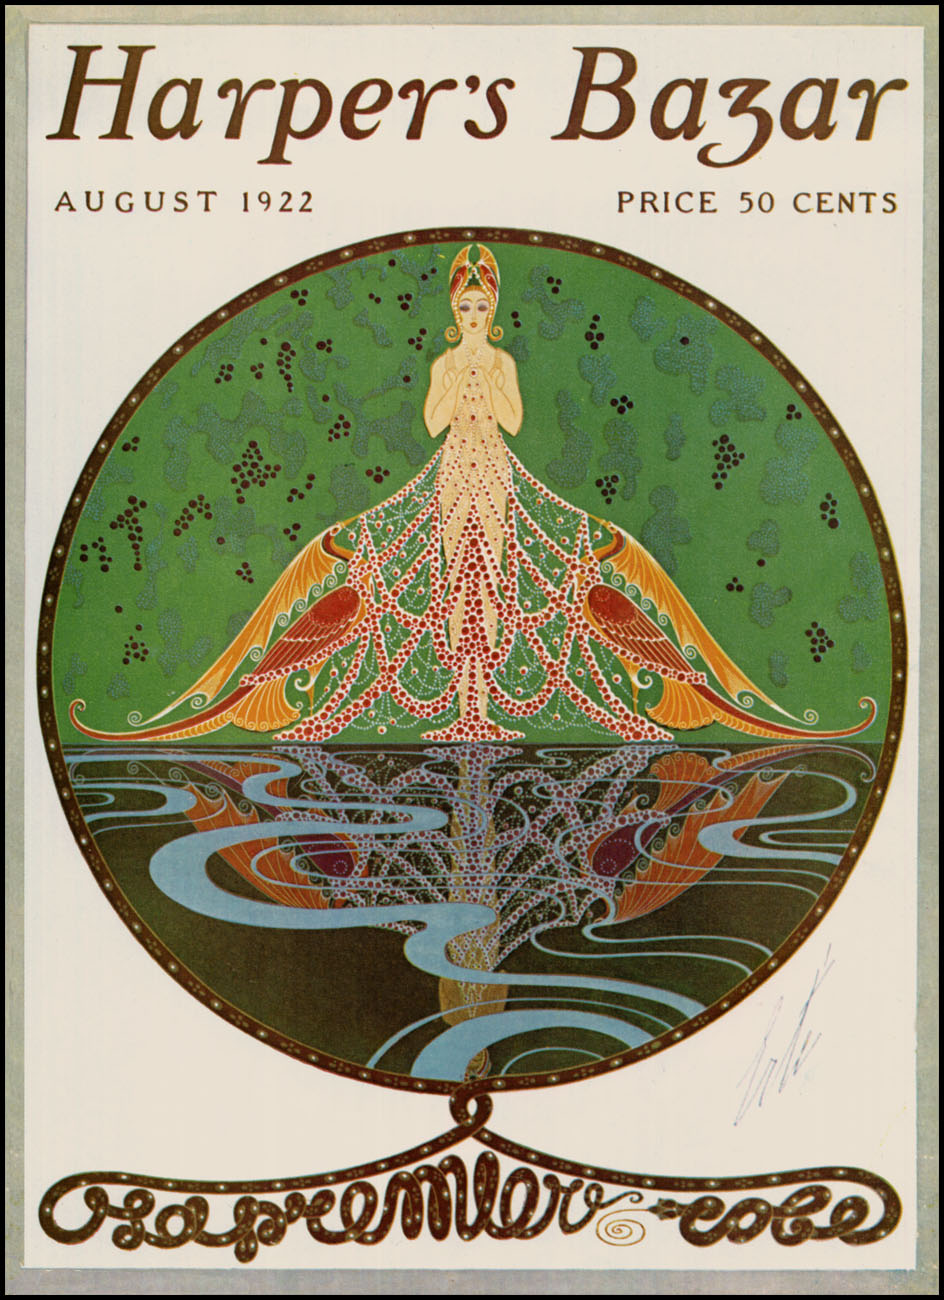 Art Deco Harper's Bazar cover by Erté, August 1922